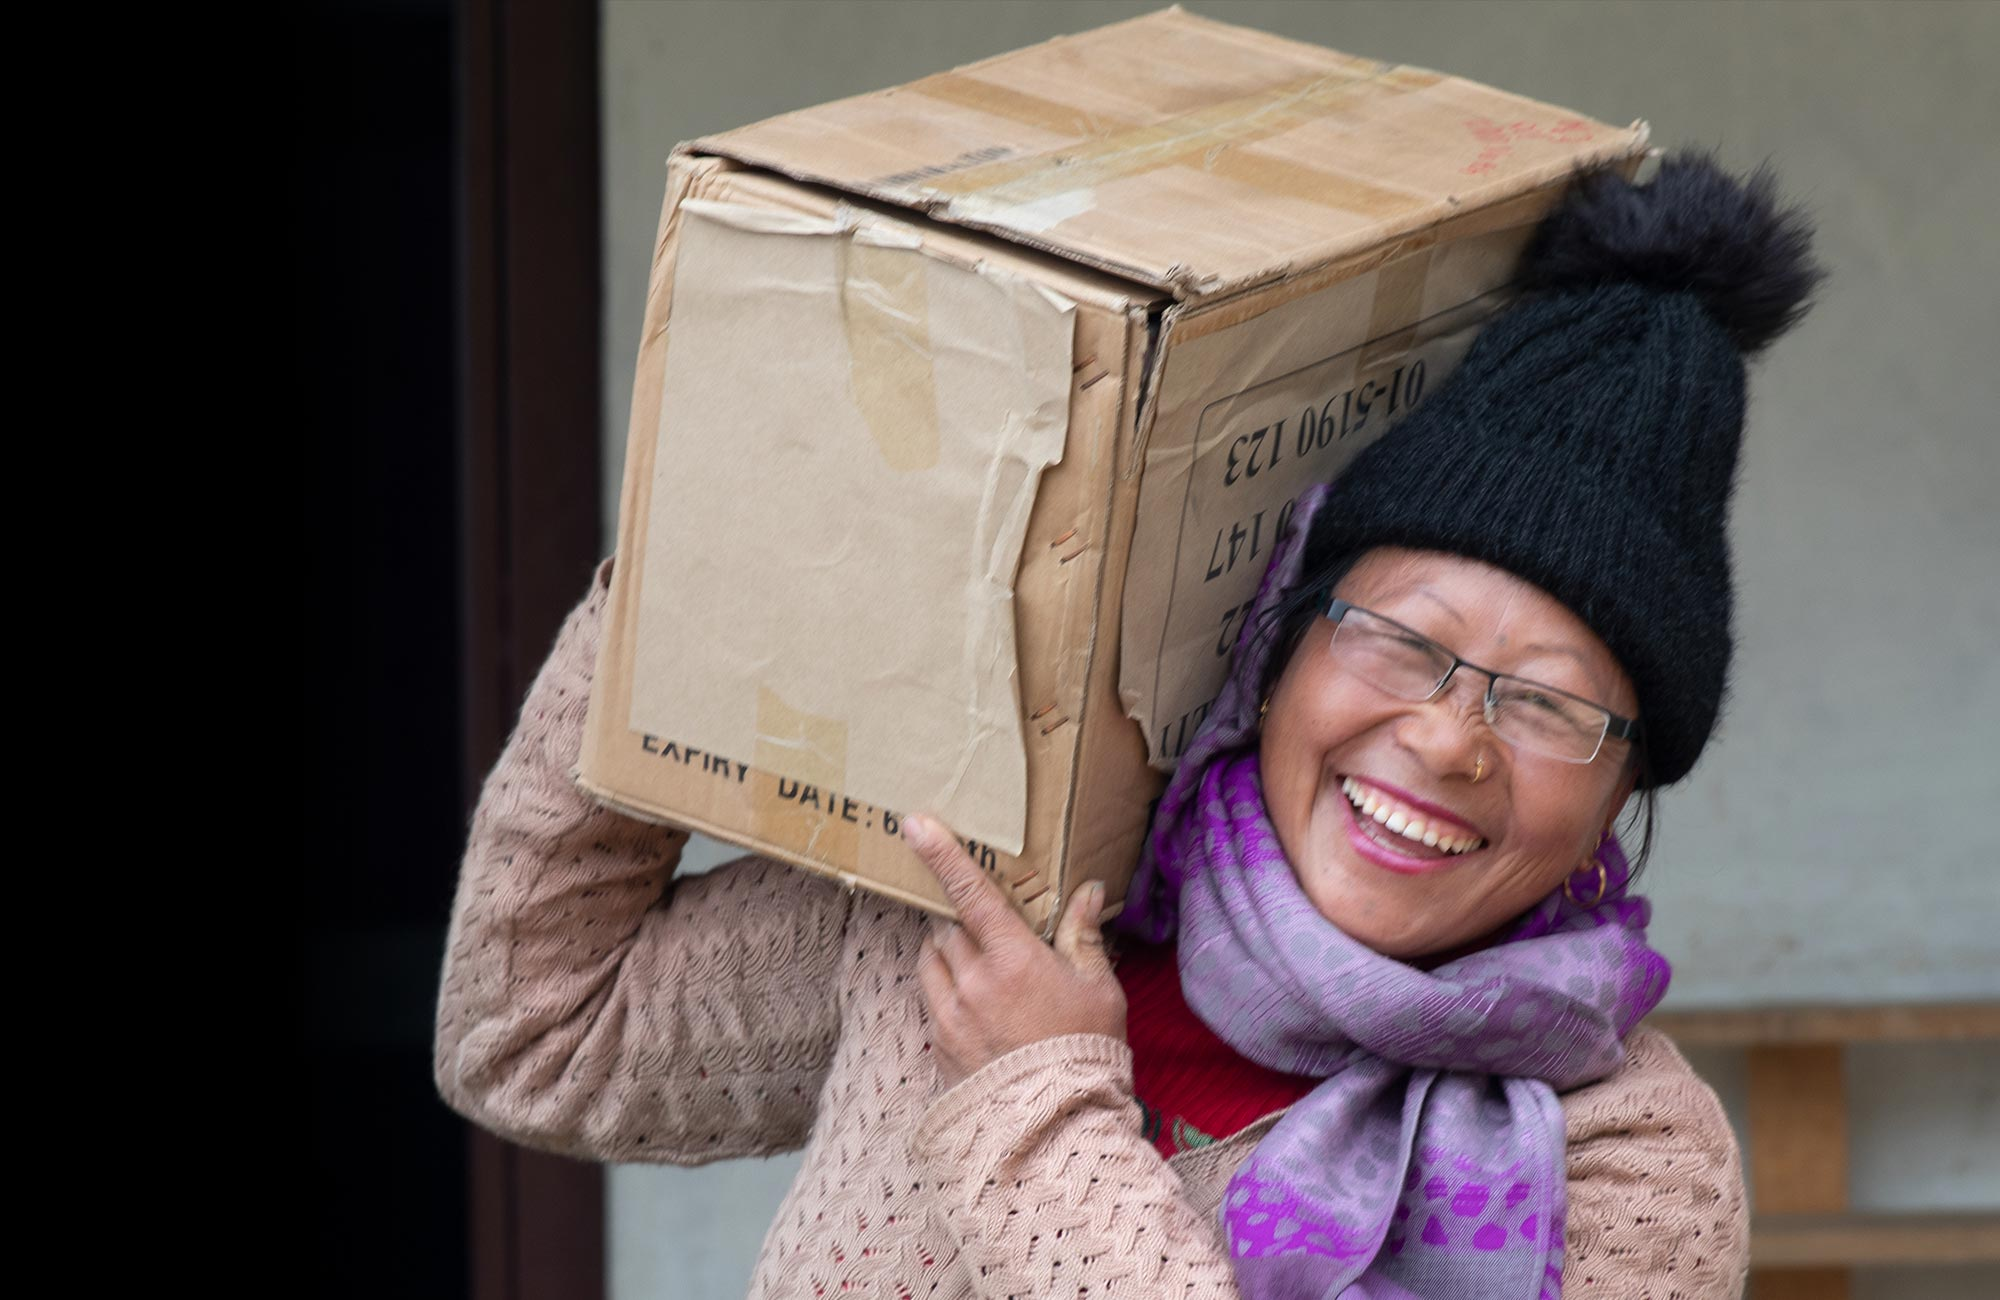 Smiling woman holding cardboad box